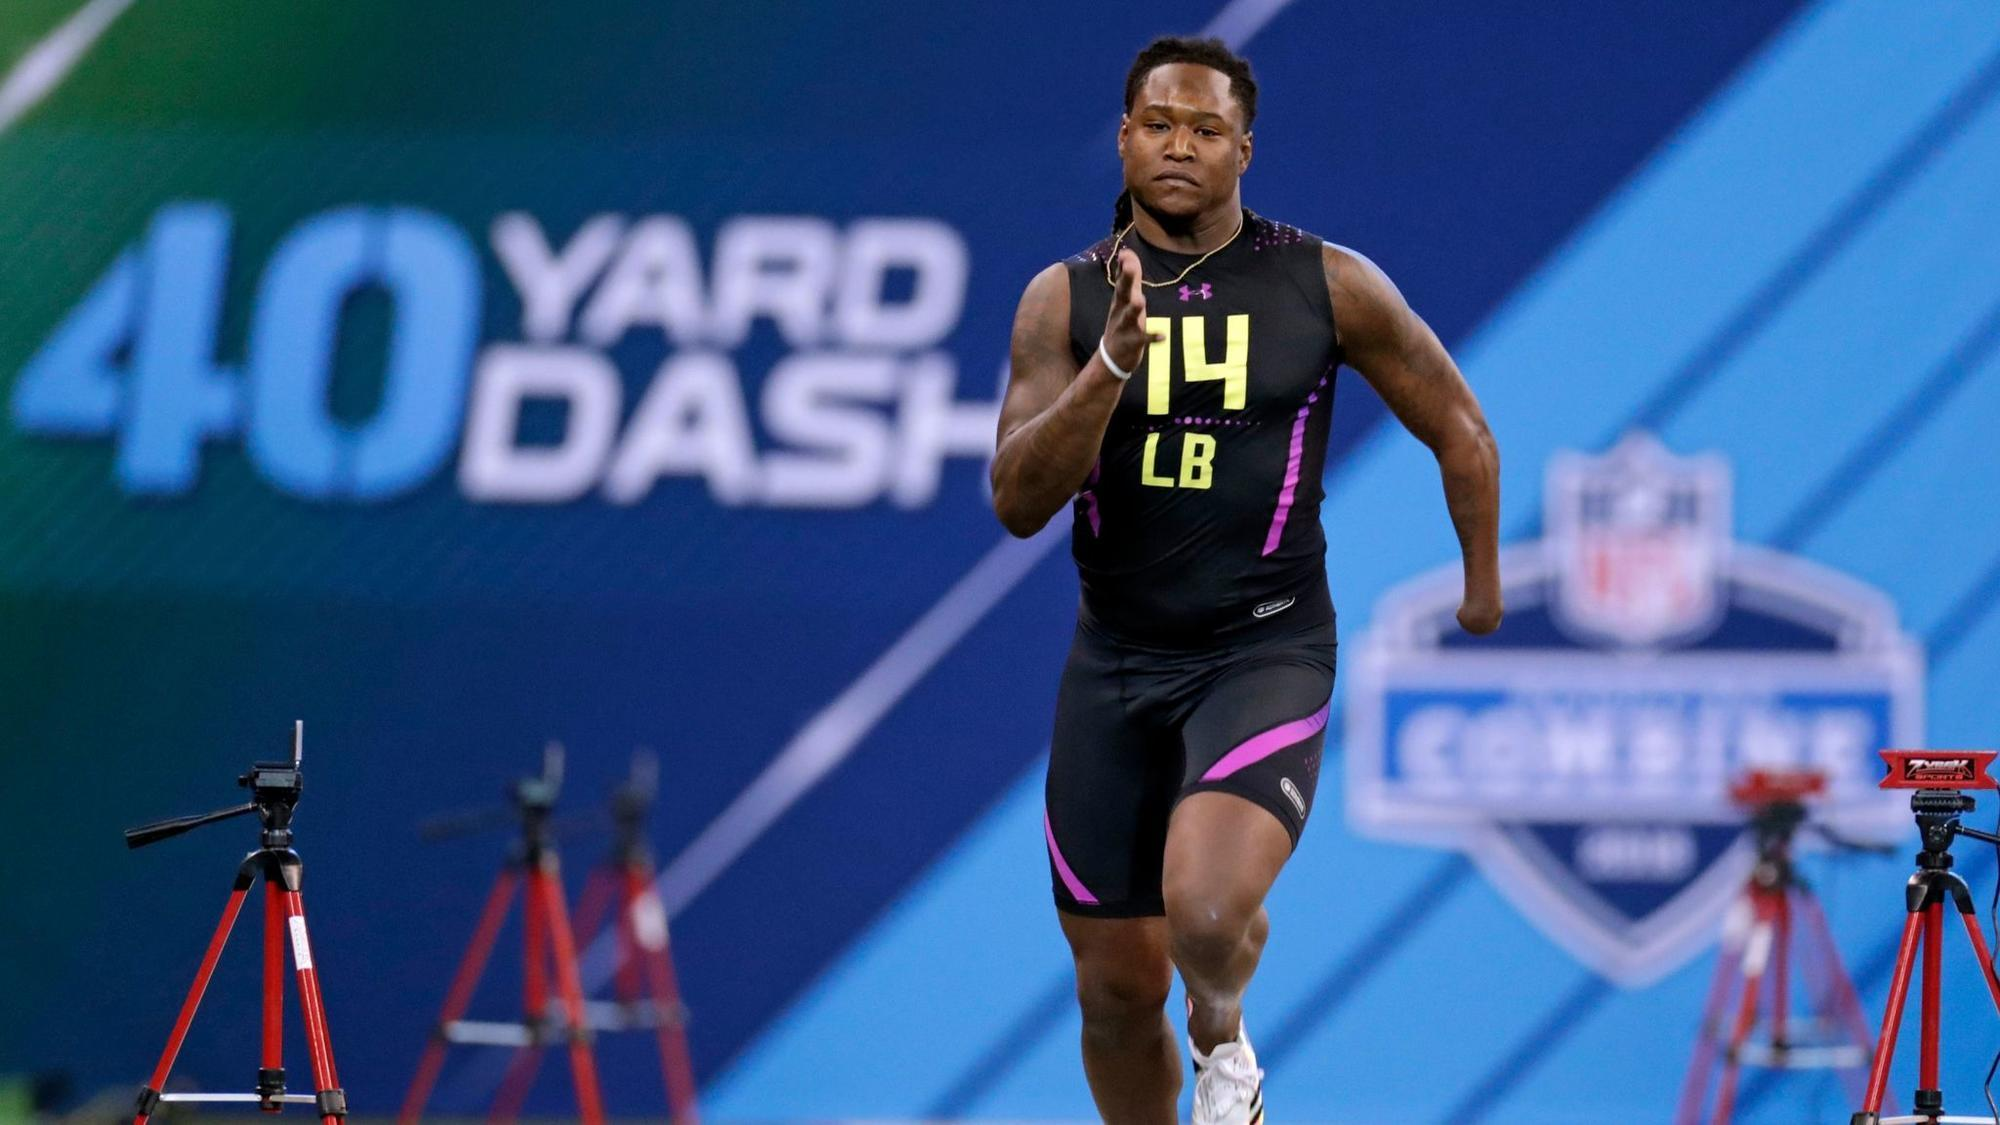 Shaquem Griffin made NFL combine history with fastest linebacker 40-yard dash time since they were recorded in 2003.